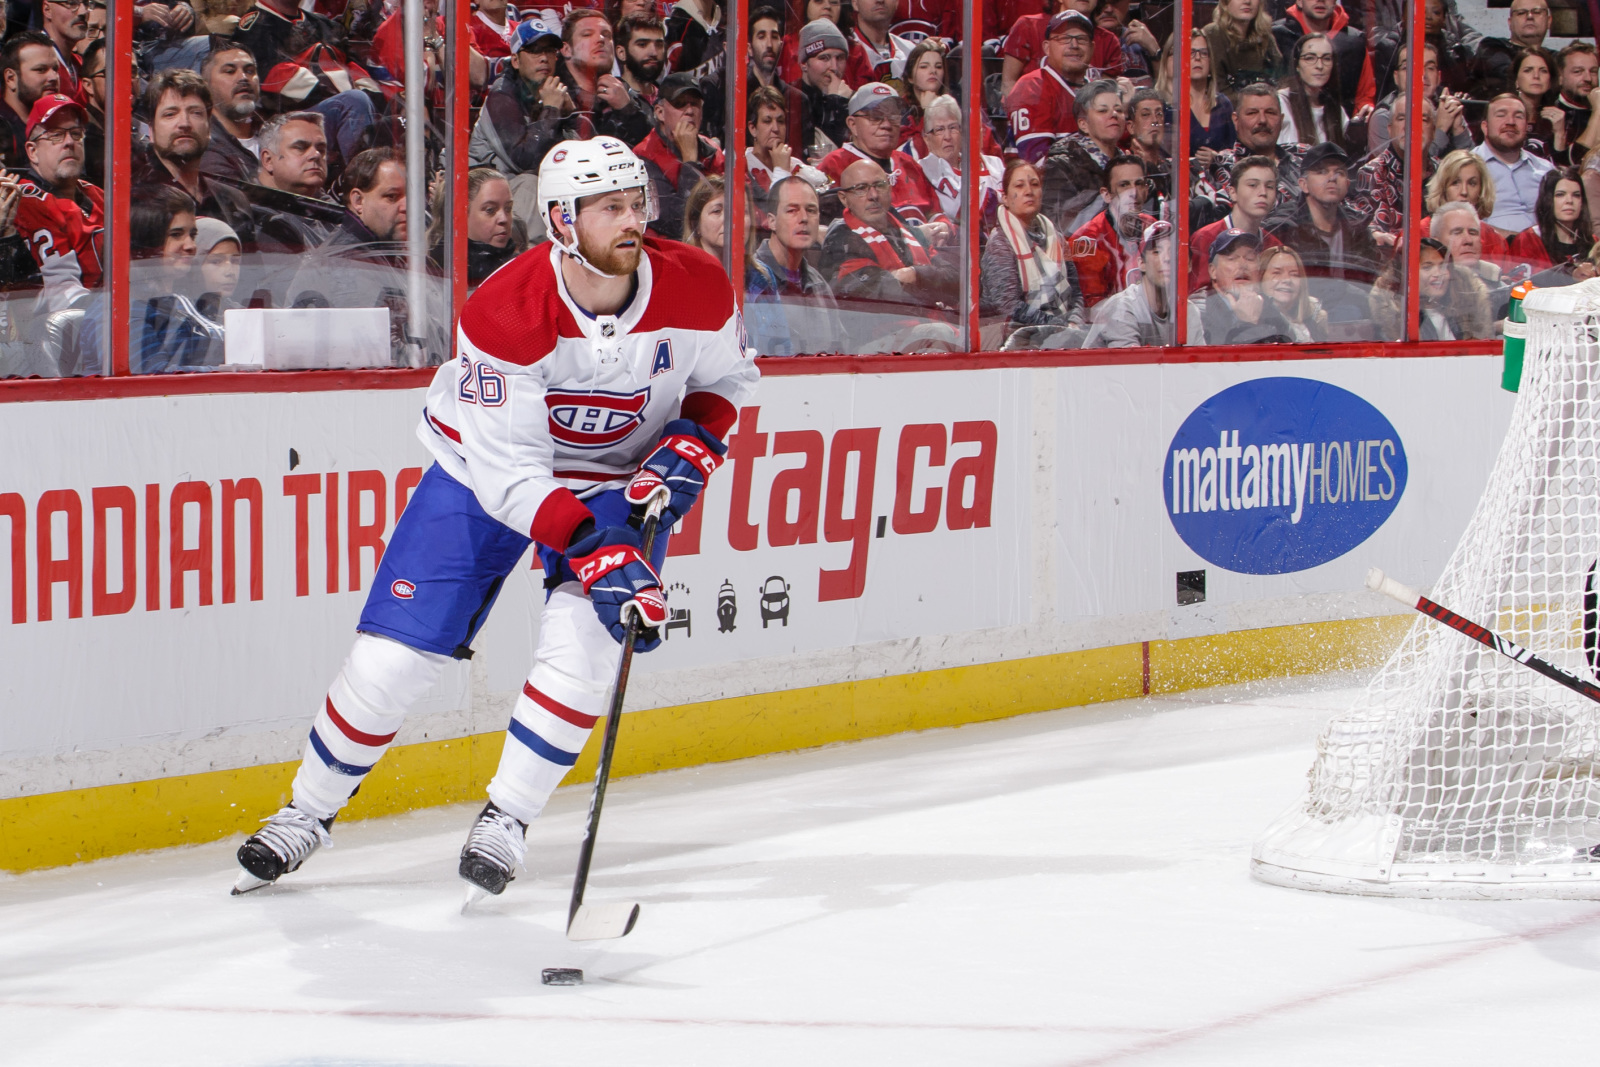 The Hurricanes made an offer to the Montreal Canadiens for Jeff Petry